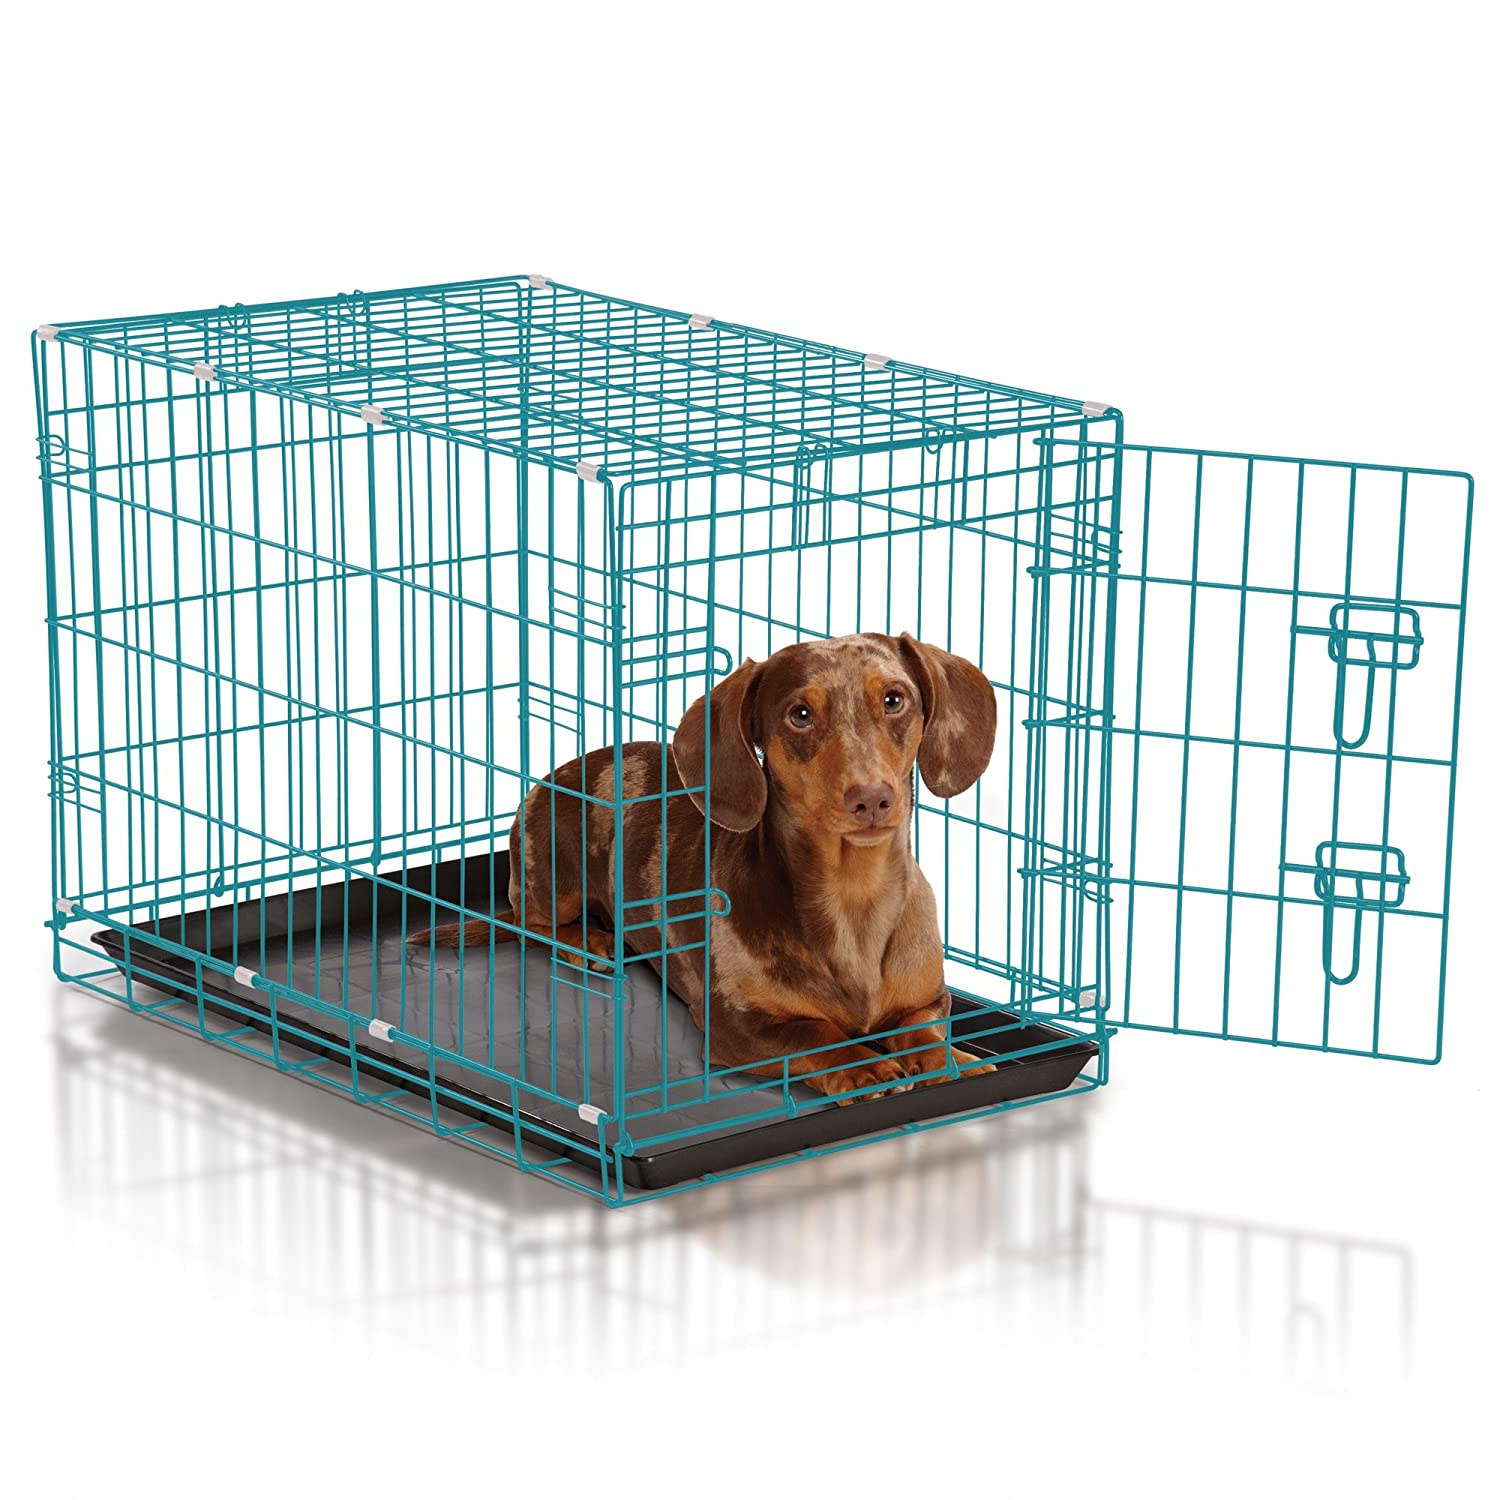 Amazon.com : Easy Dual Latching Dog Crate, Medium, Teal : Pet Supplies